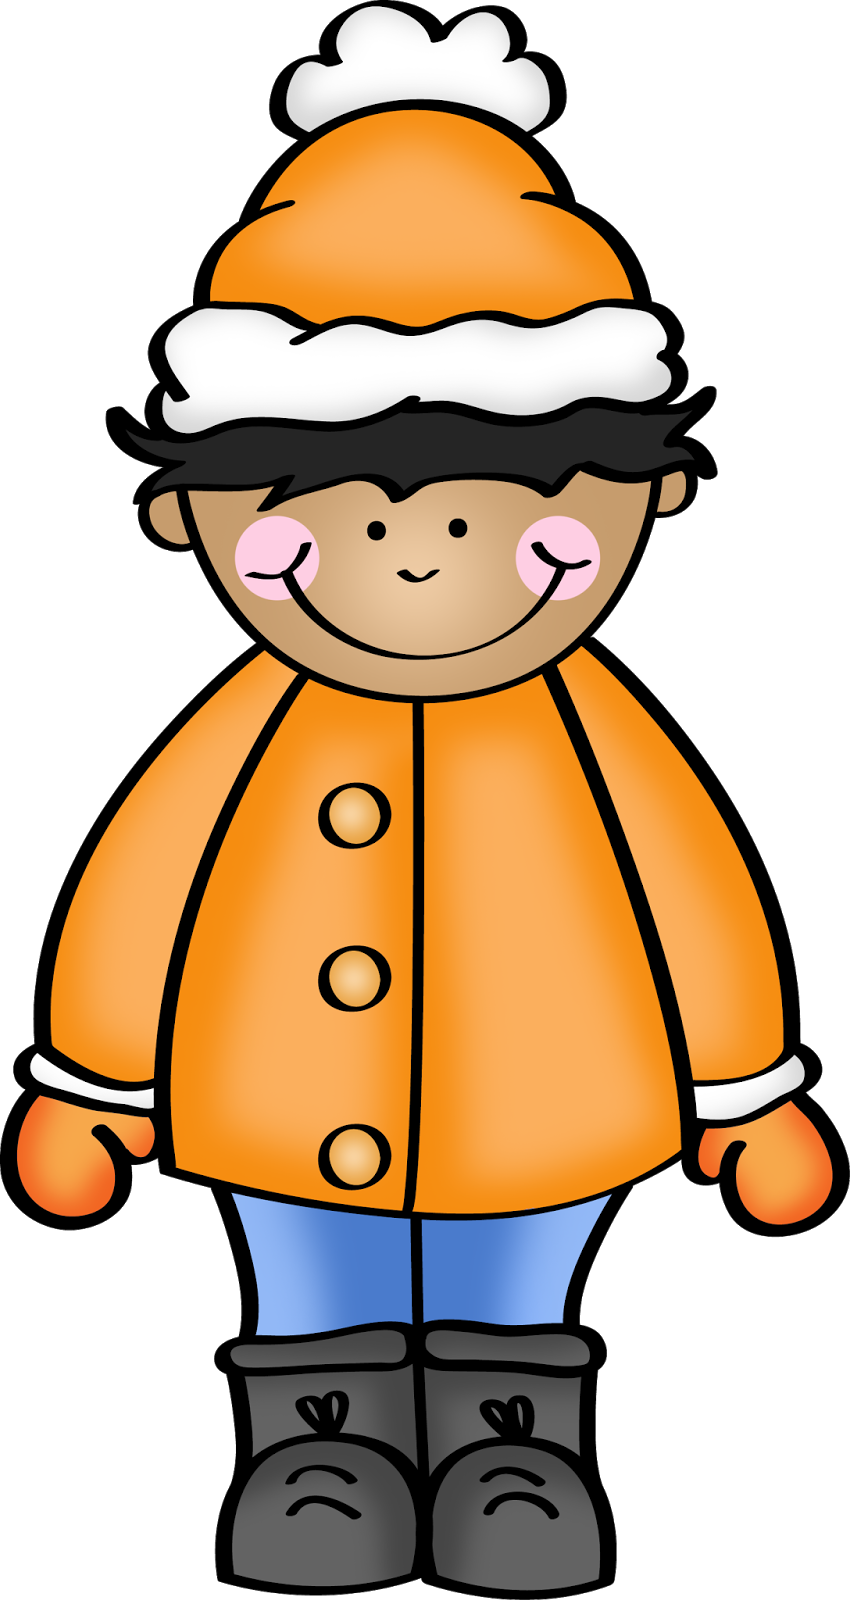 Mittens clipart coat. November happiness is watermelon